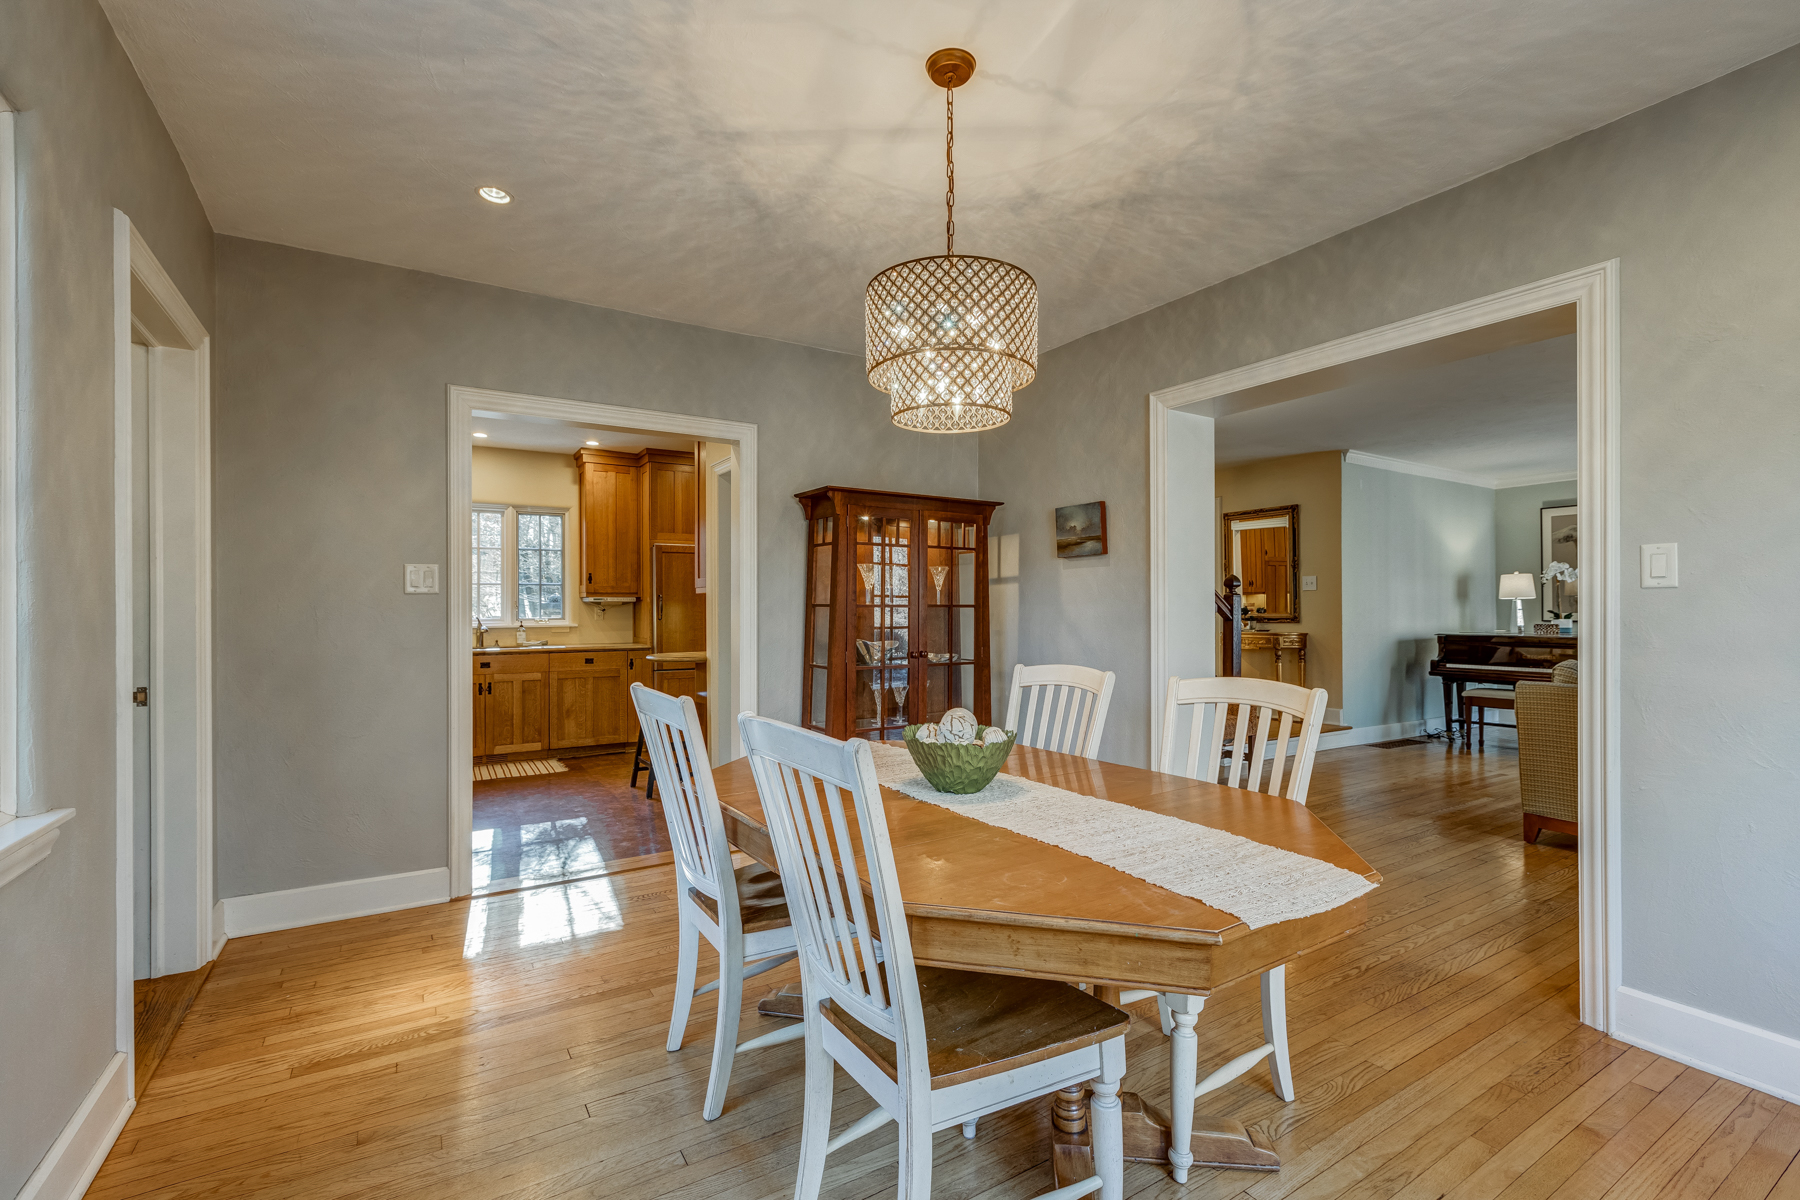 5. Dining Room to Kitchen_53A1740_1_2